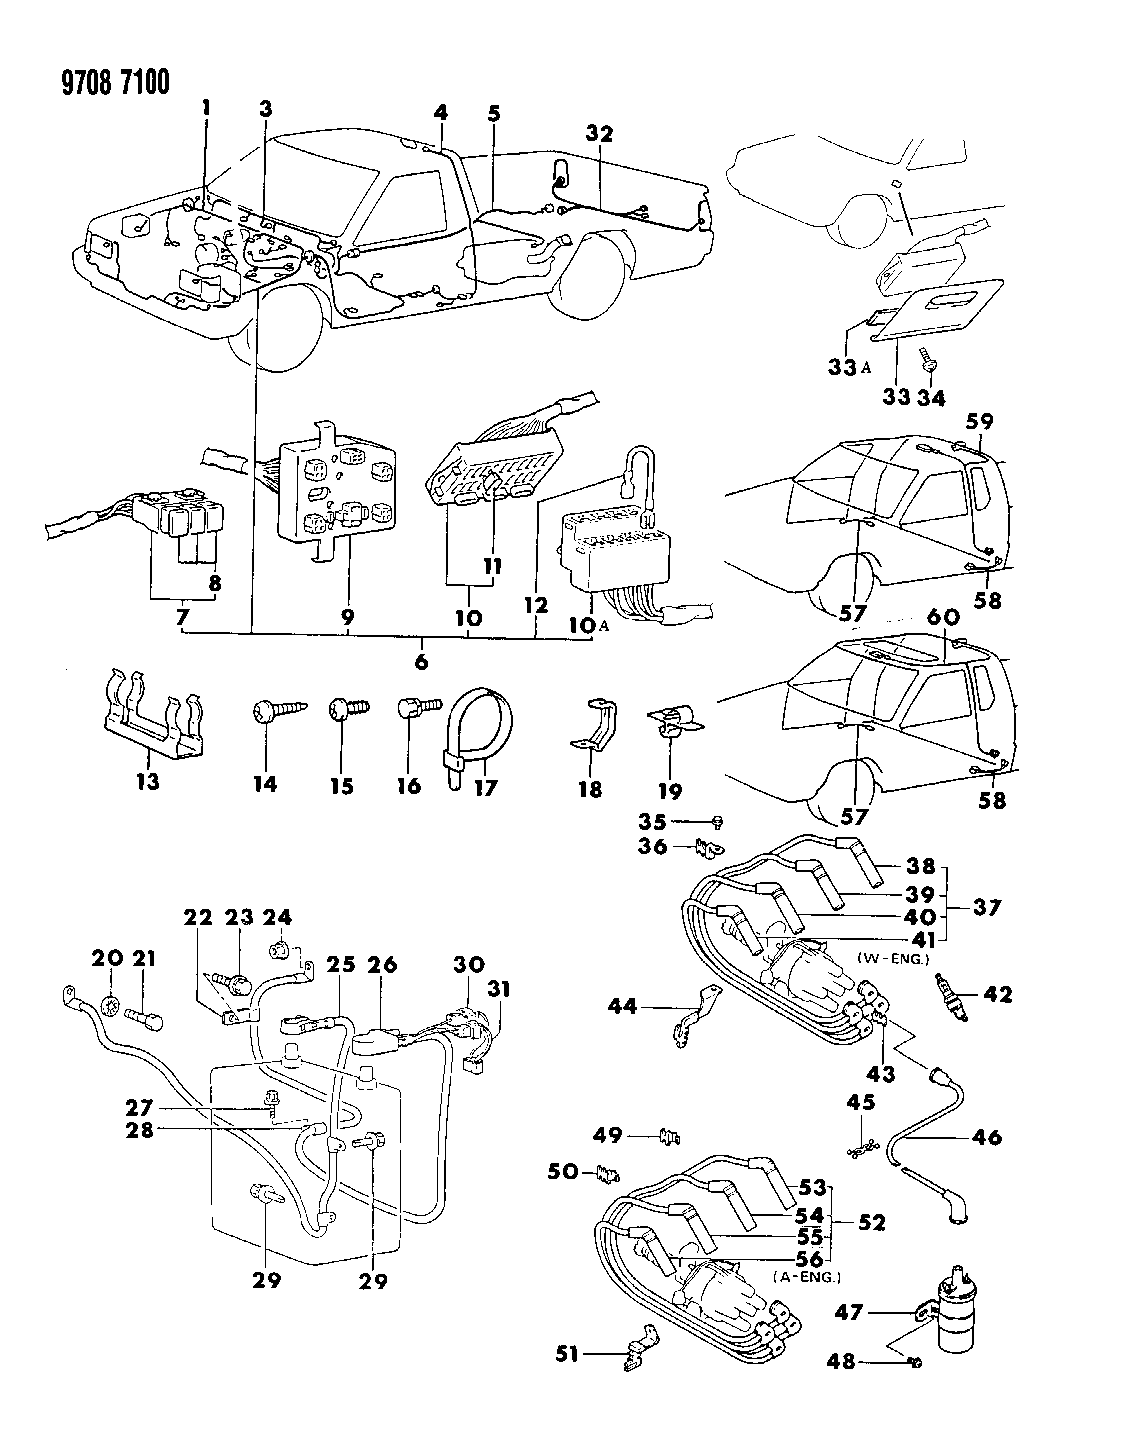 1989 Dodge Ram 50 Wiring Diagram Library Diagrams Harness